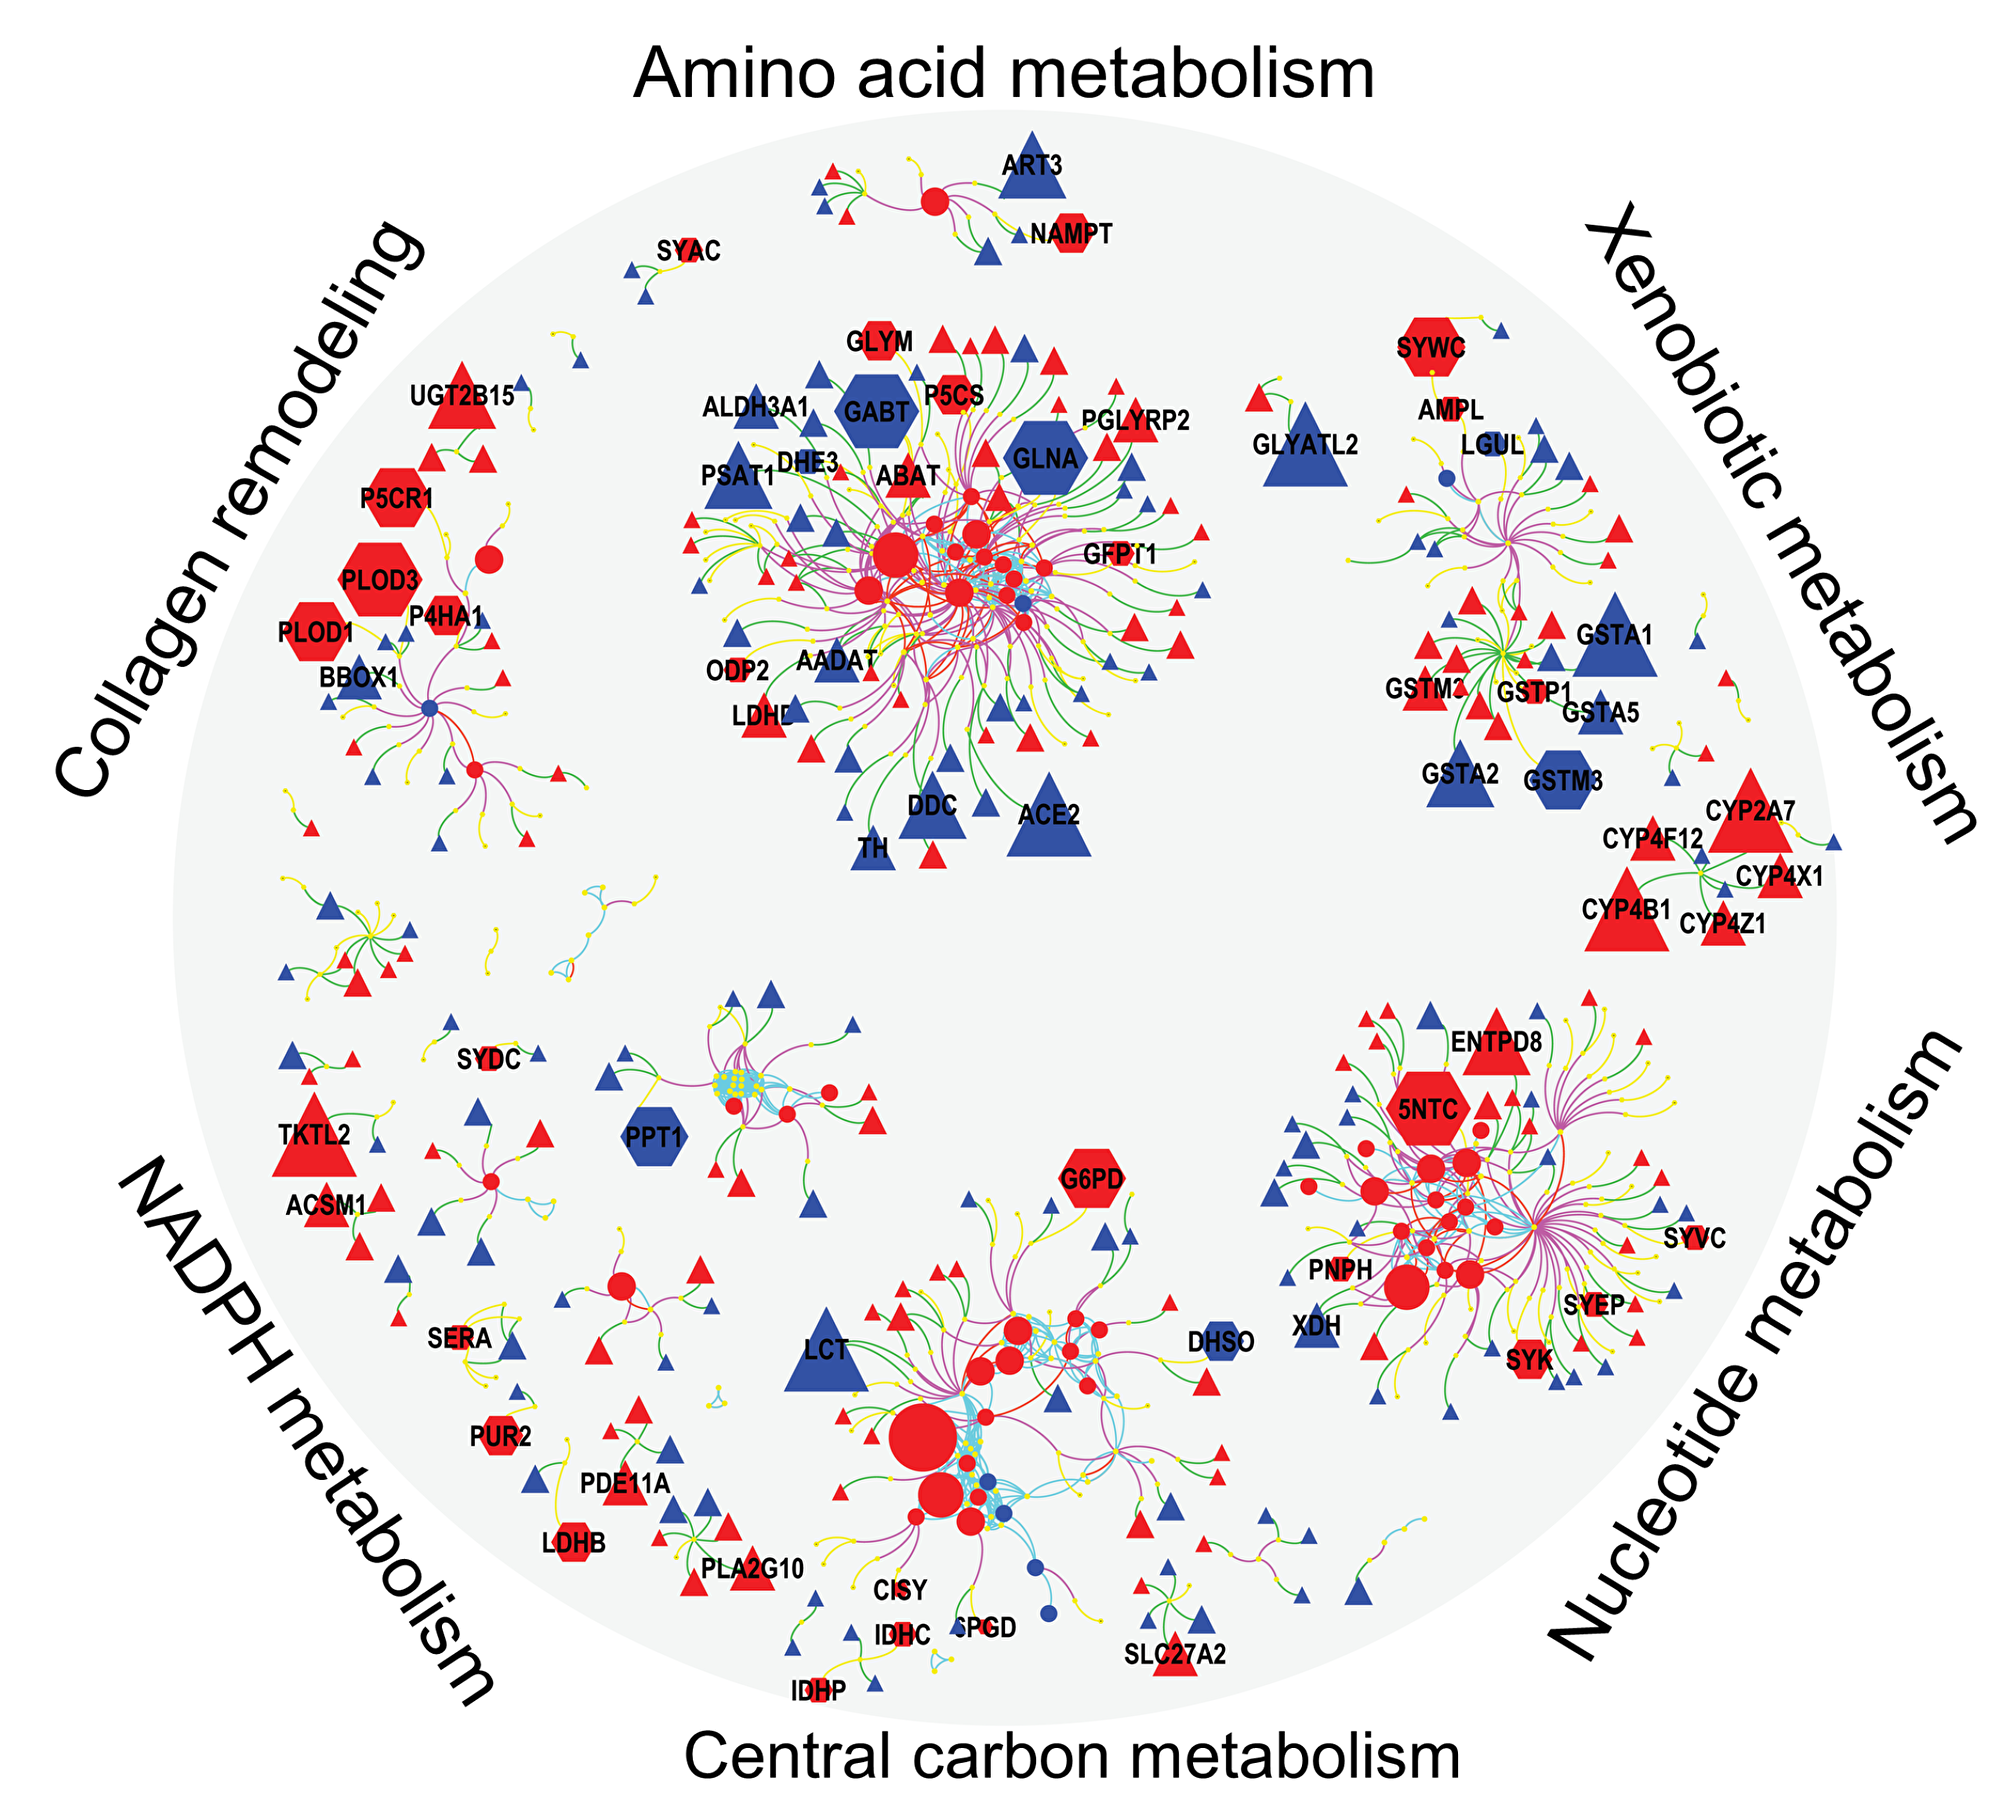 Integrated visualization of genes (Δ), protein () and metabolites () by mapping their biochemical and chemical relationships.